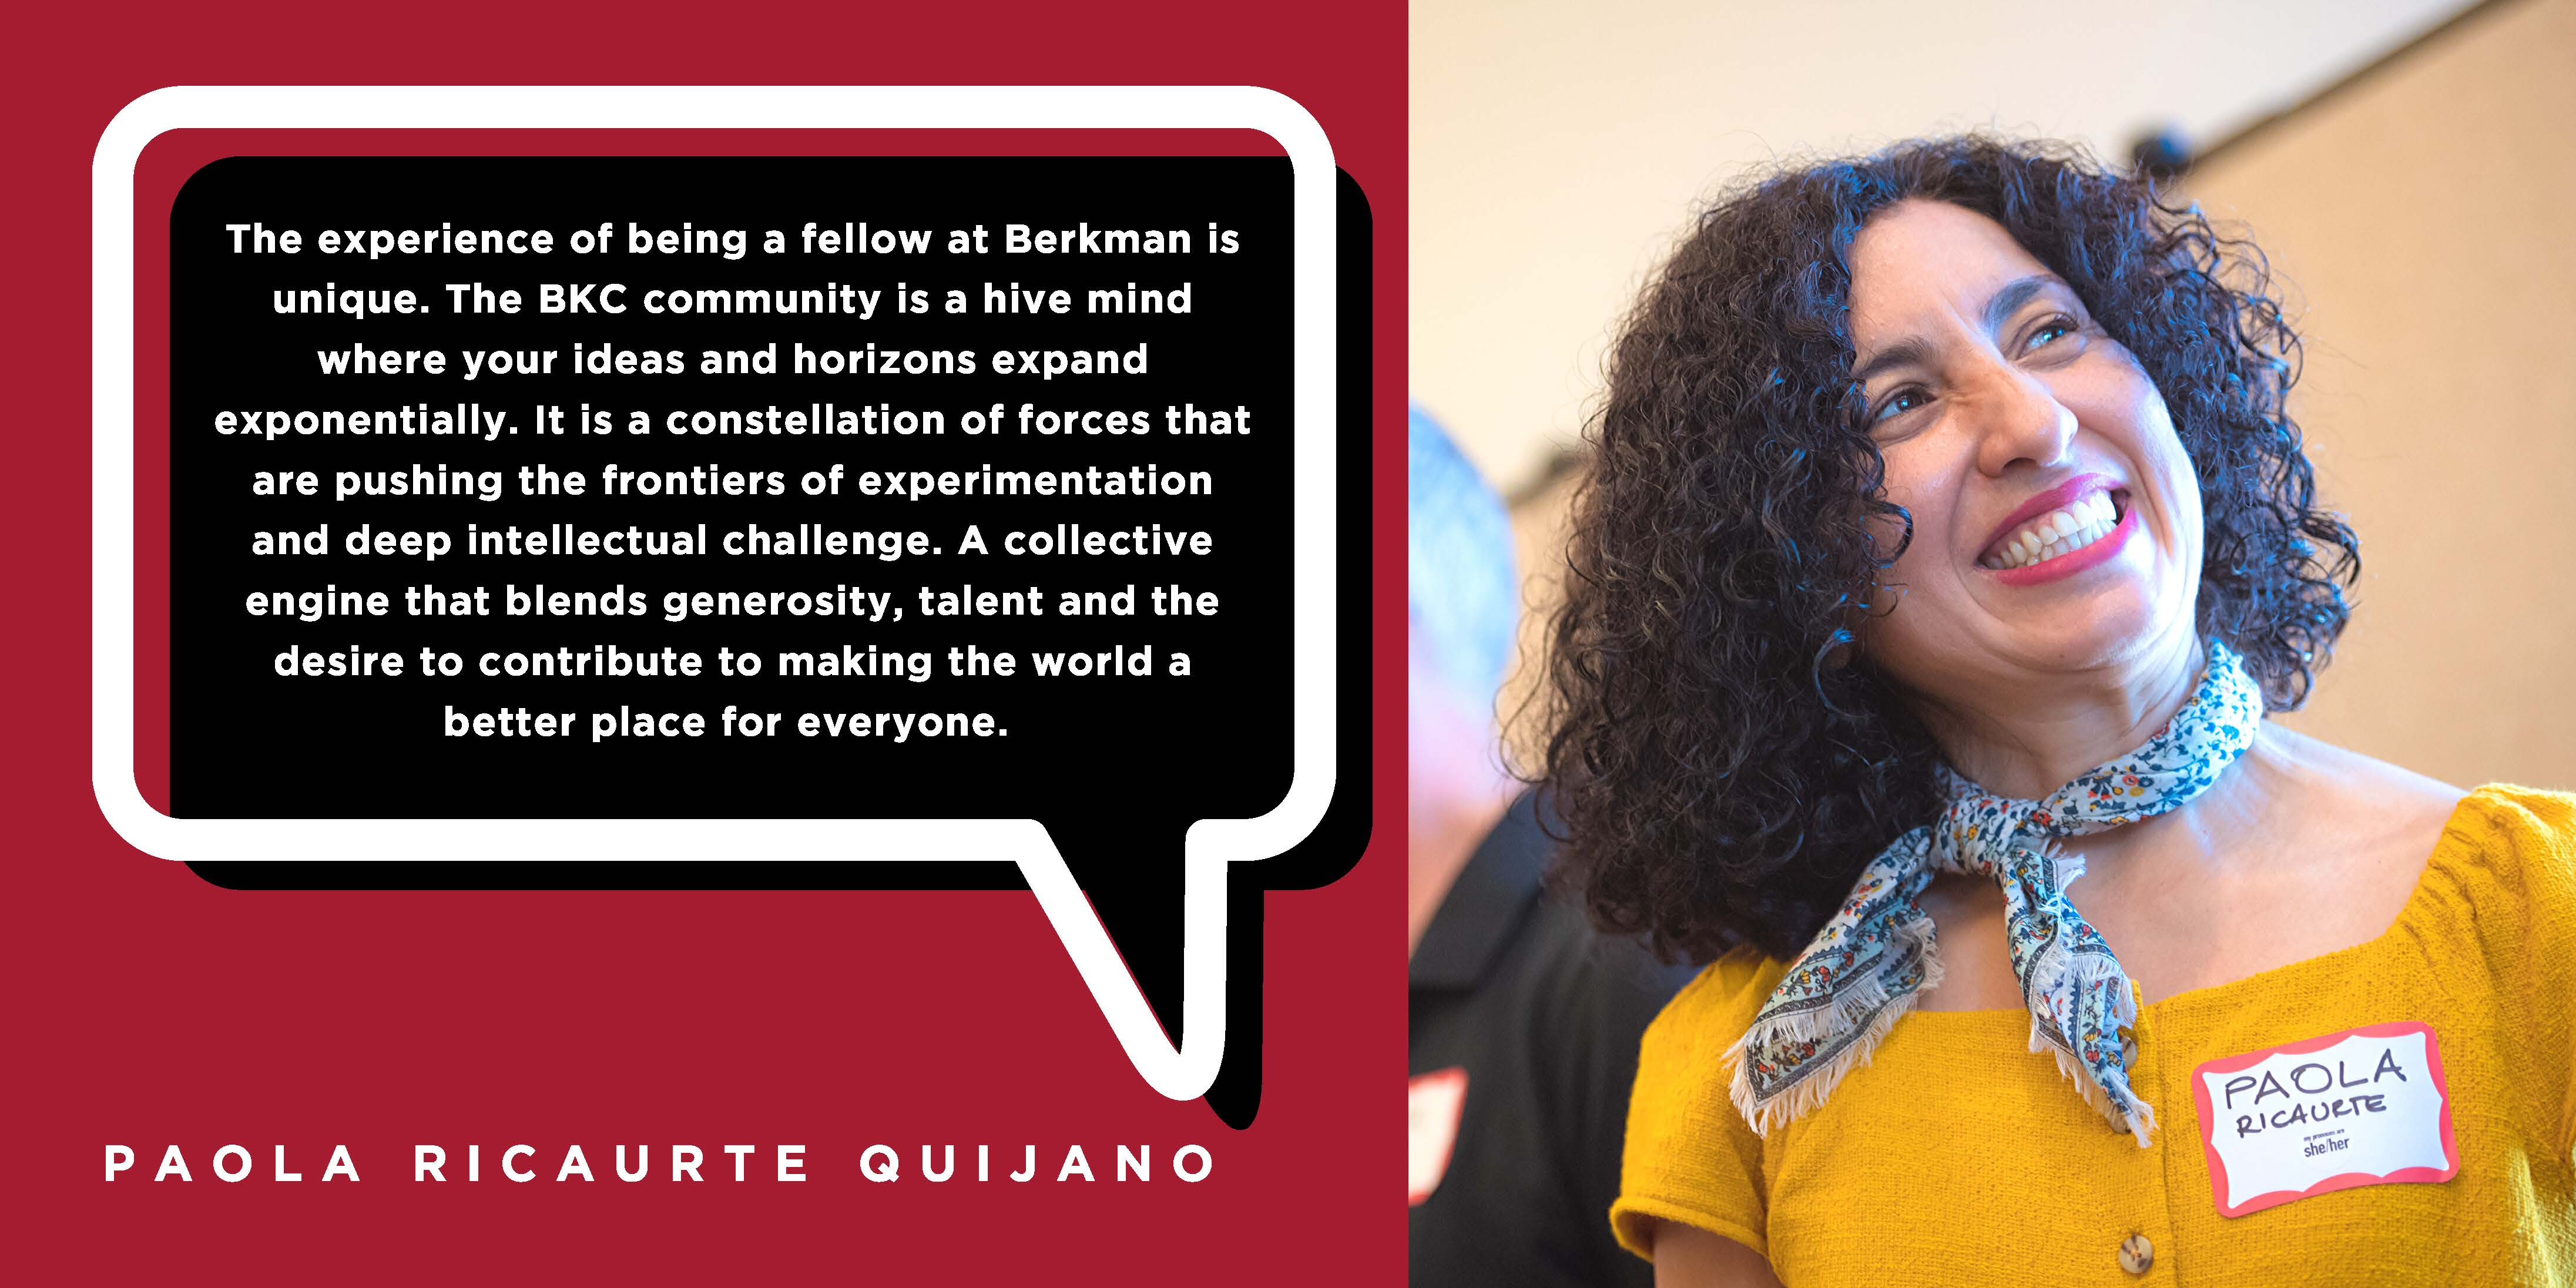 The experience of being a fellow at Berkman is unique. The BKC community is a hive mind where your ideas and horizons expand exponentially. It is a constellation of forces that are pushing the frontiers of experimentation and deep intellectual challenge. A collective engine that blends generosity, talent and the desire to contribute to making the world a better place for everyone. - Paola Ricaurte Quijano